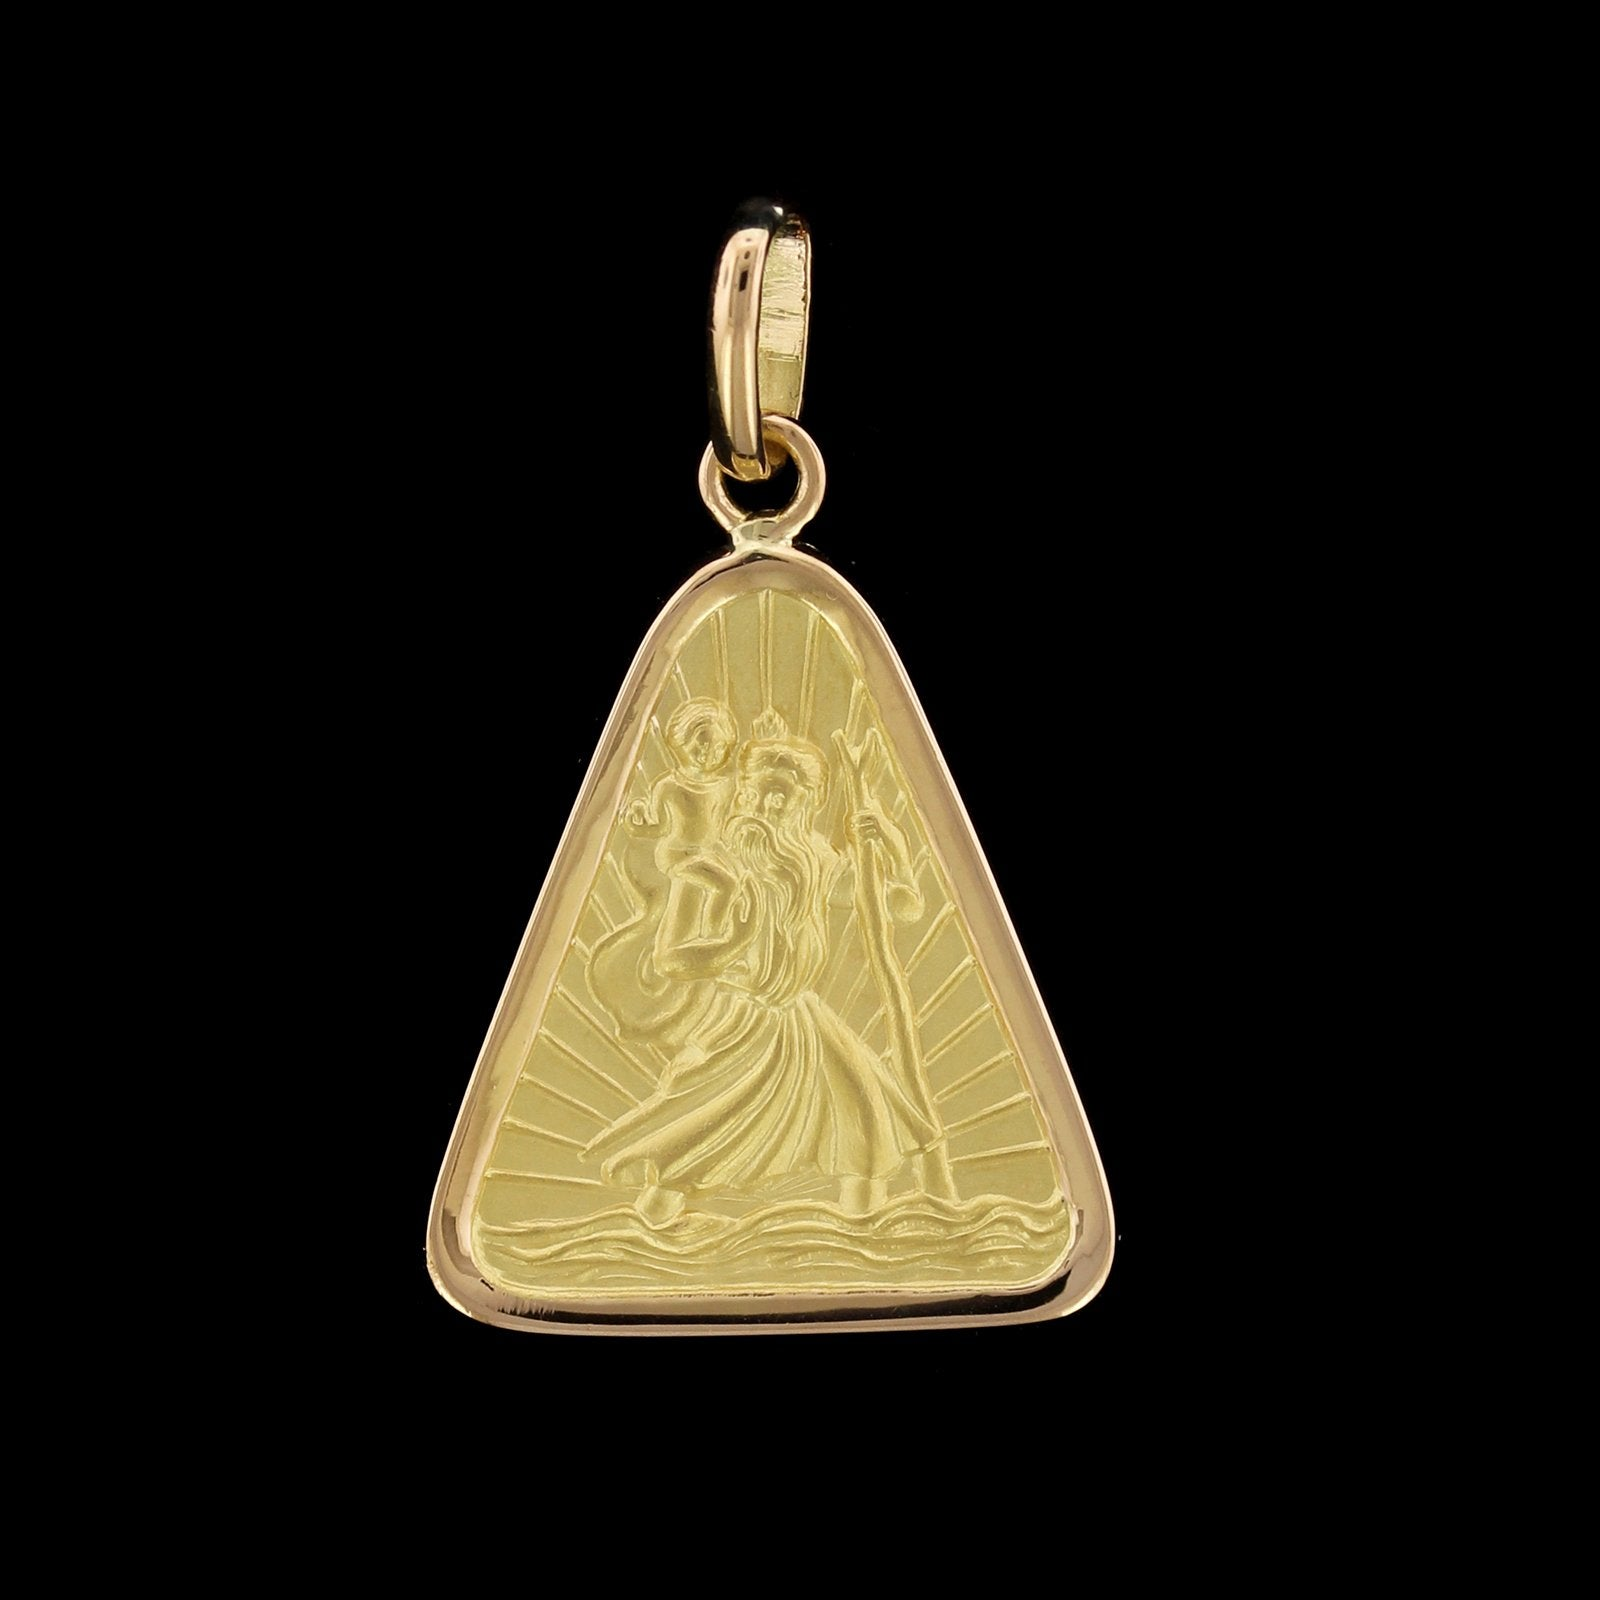 18K Yellow Gold Estate St. Christopher Medal